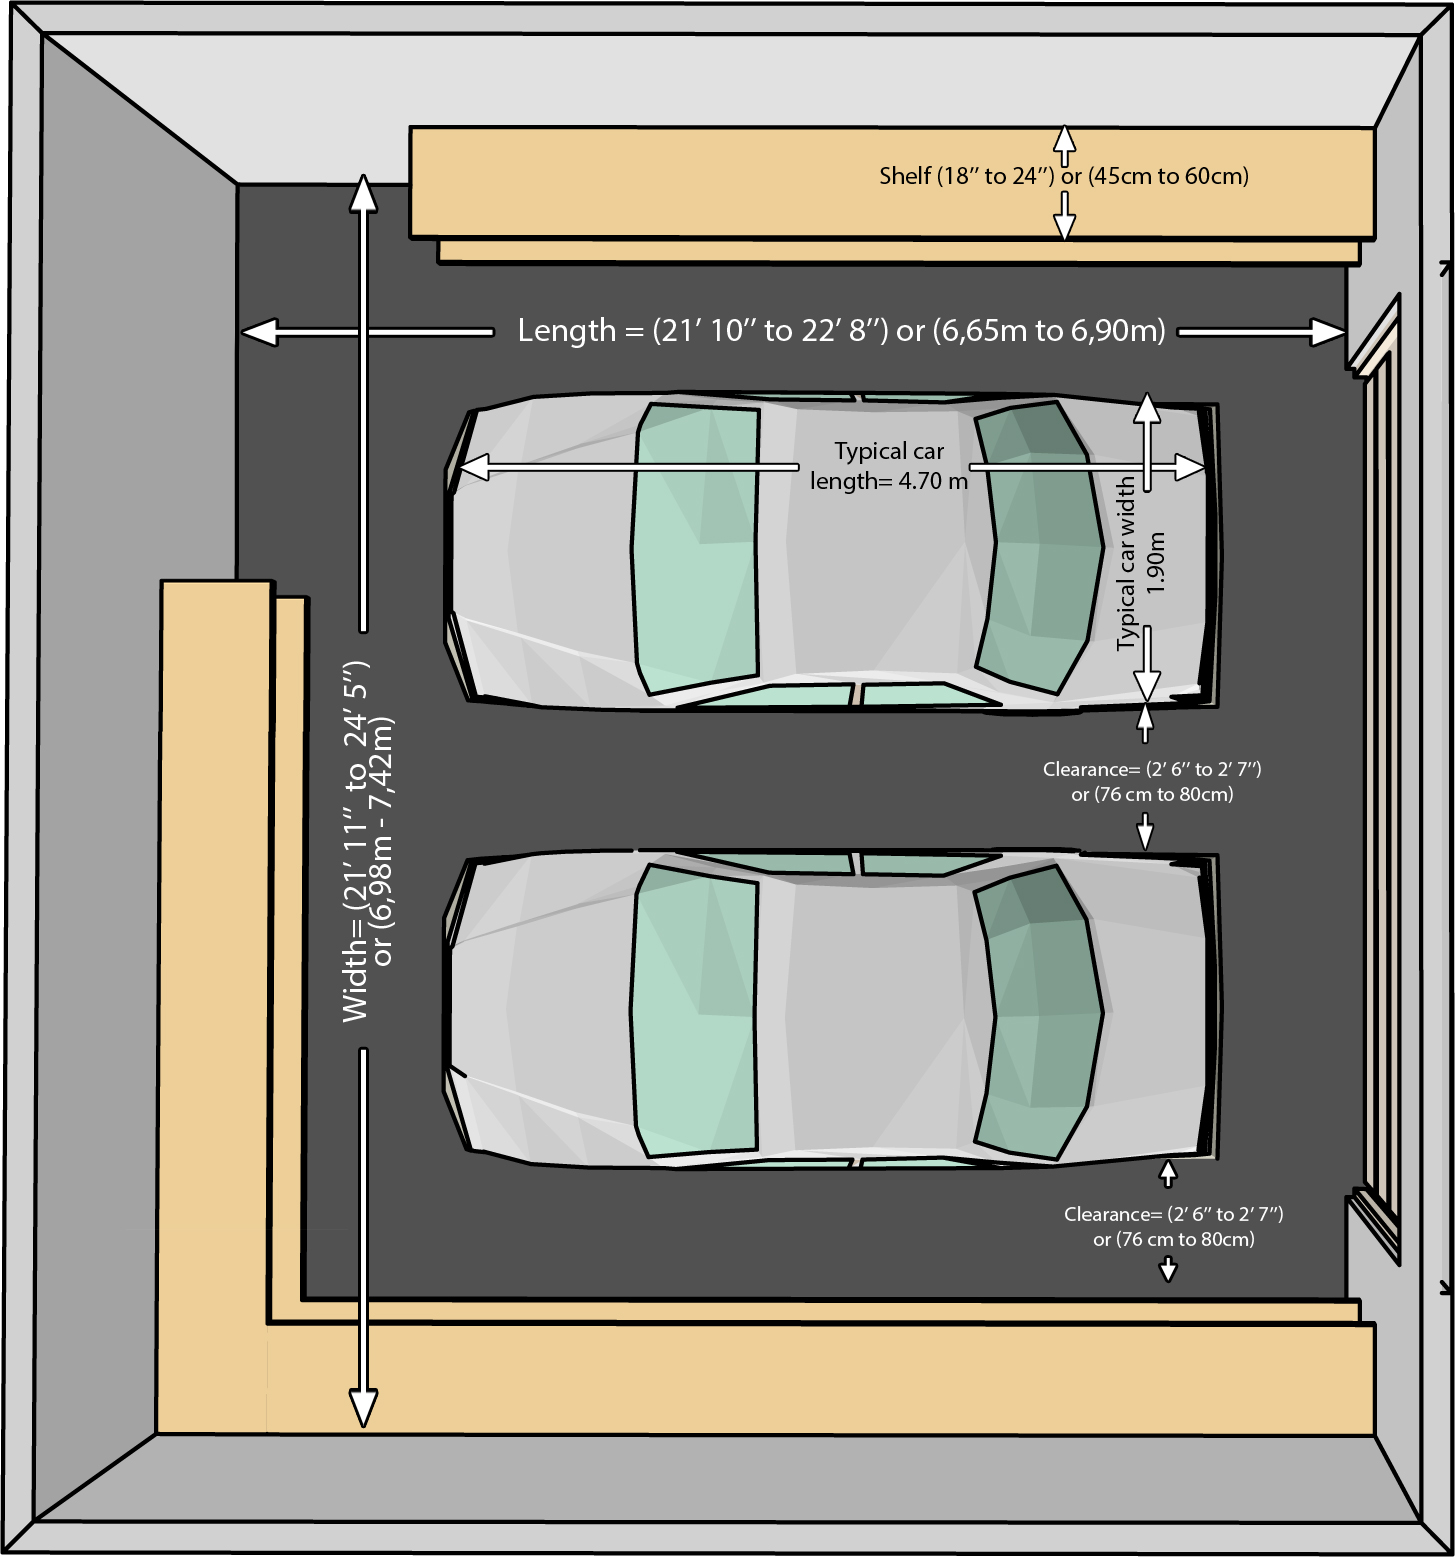 The dimensions of an one car and a two car garage for 2 car garage size square feet